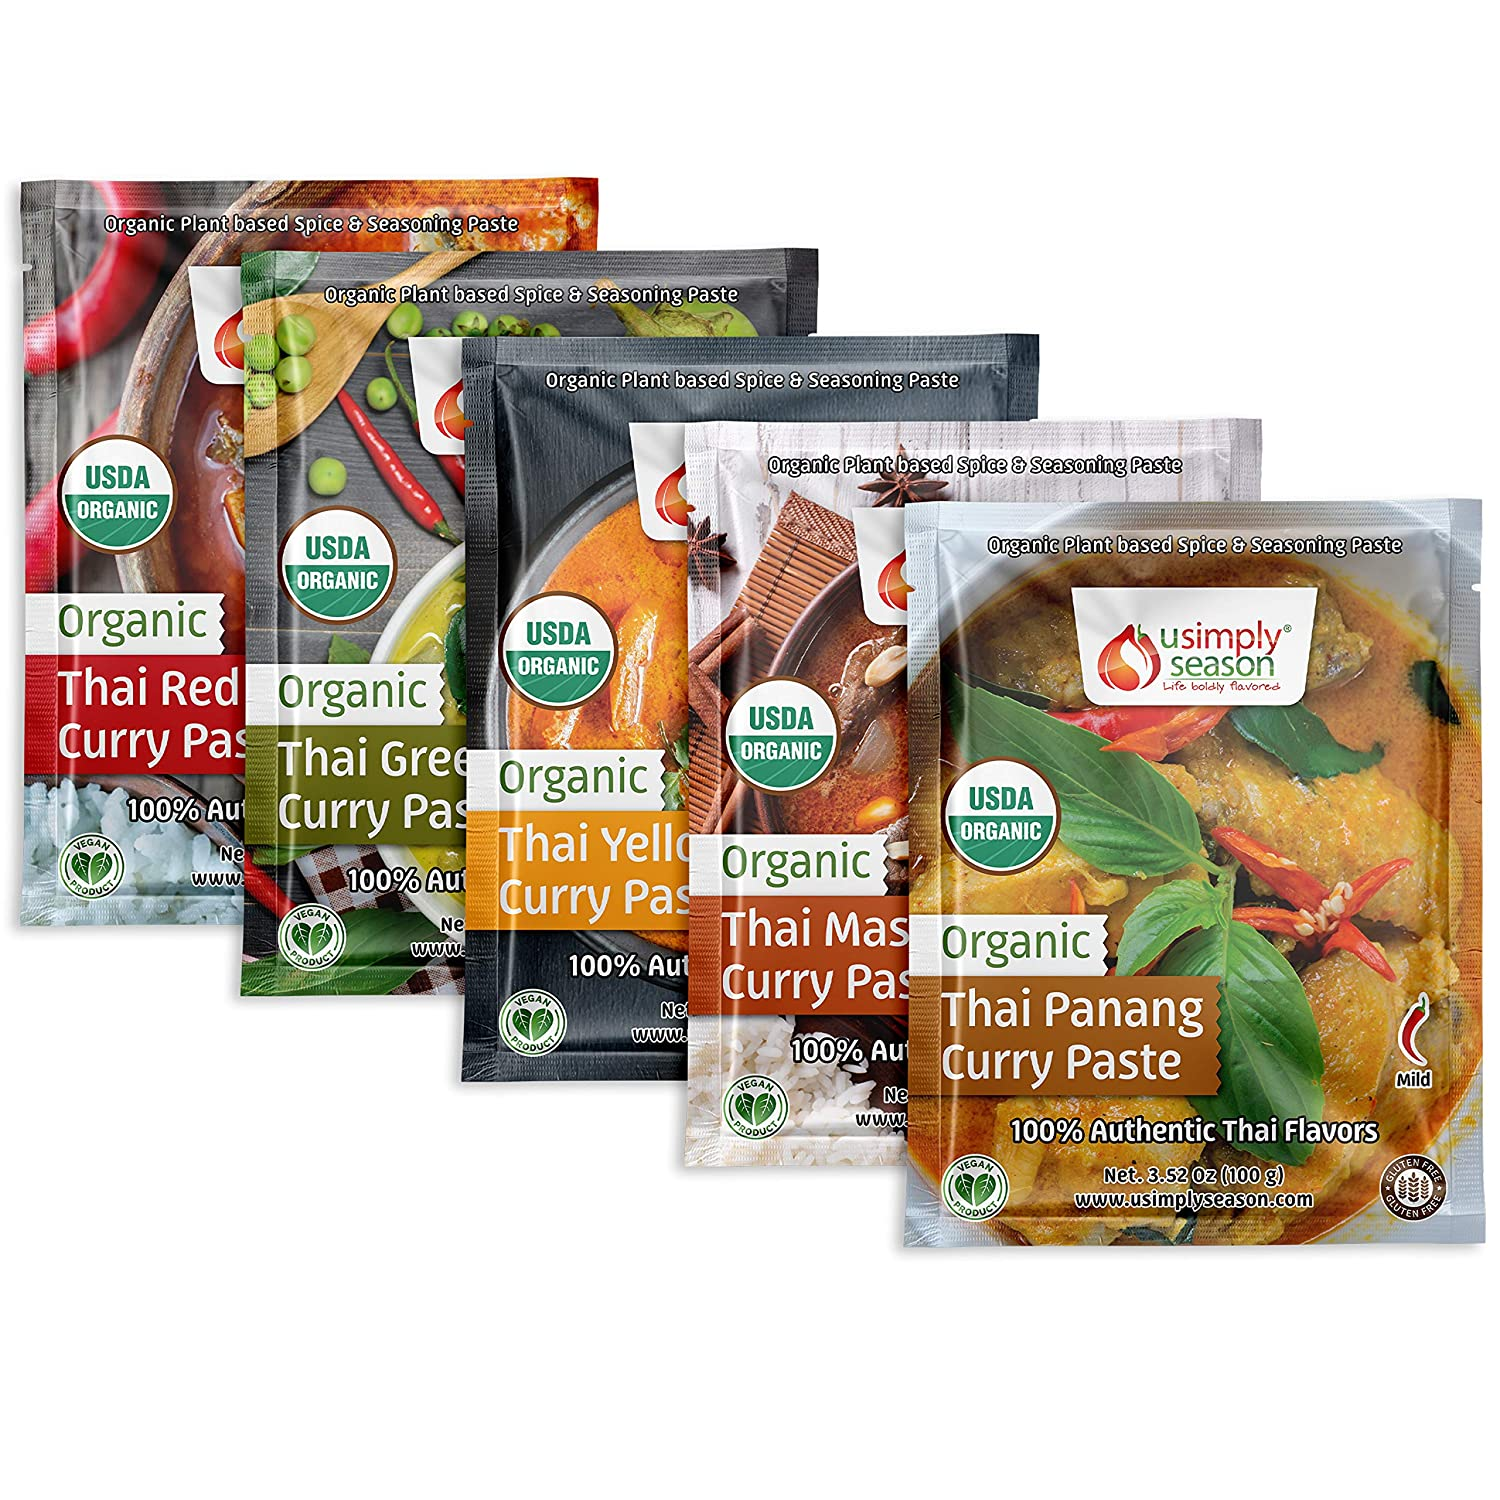 USimplySeason Organic Thai Spice Seasoning Curry Paste Bundle - Yellow Curry, Green Curry, Red Curry, Panang Curry & Massaman Curry (1 pack each)